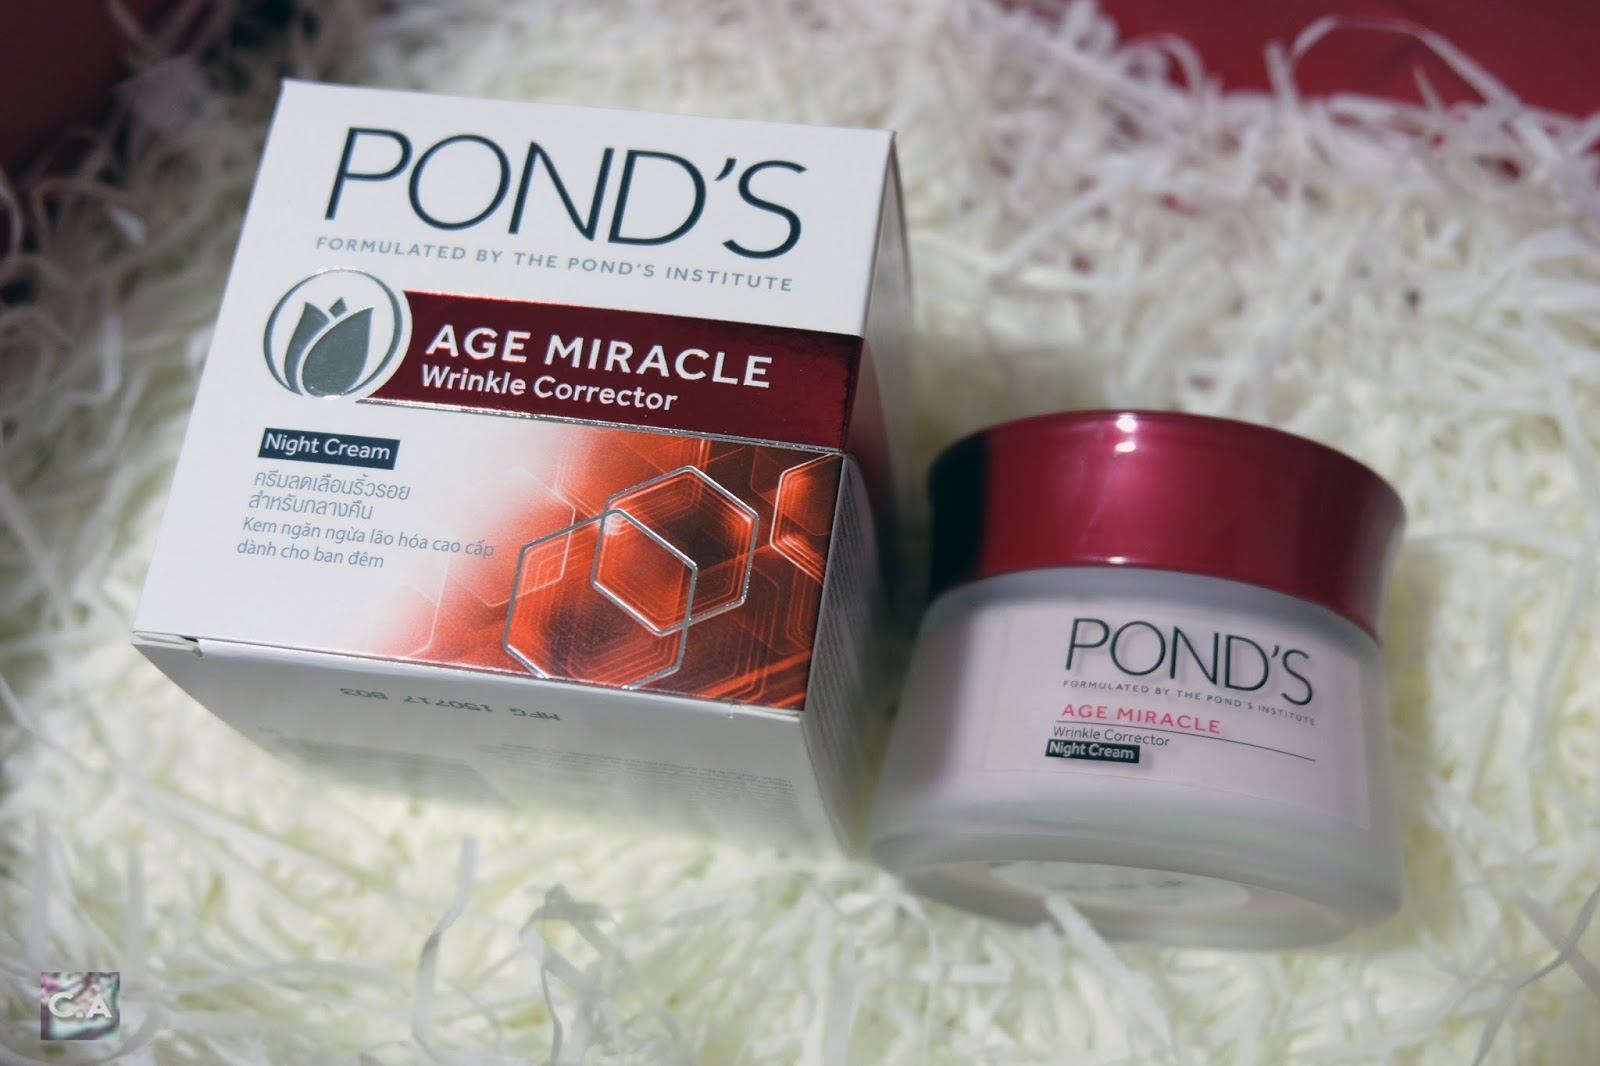 Pond's Age Miracle Wrinkle Corrector Night Cream Curitan Aqalili